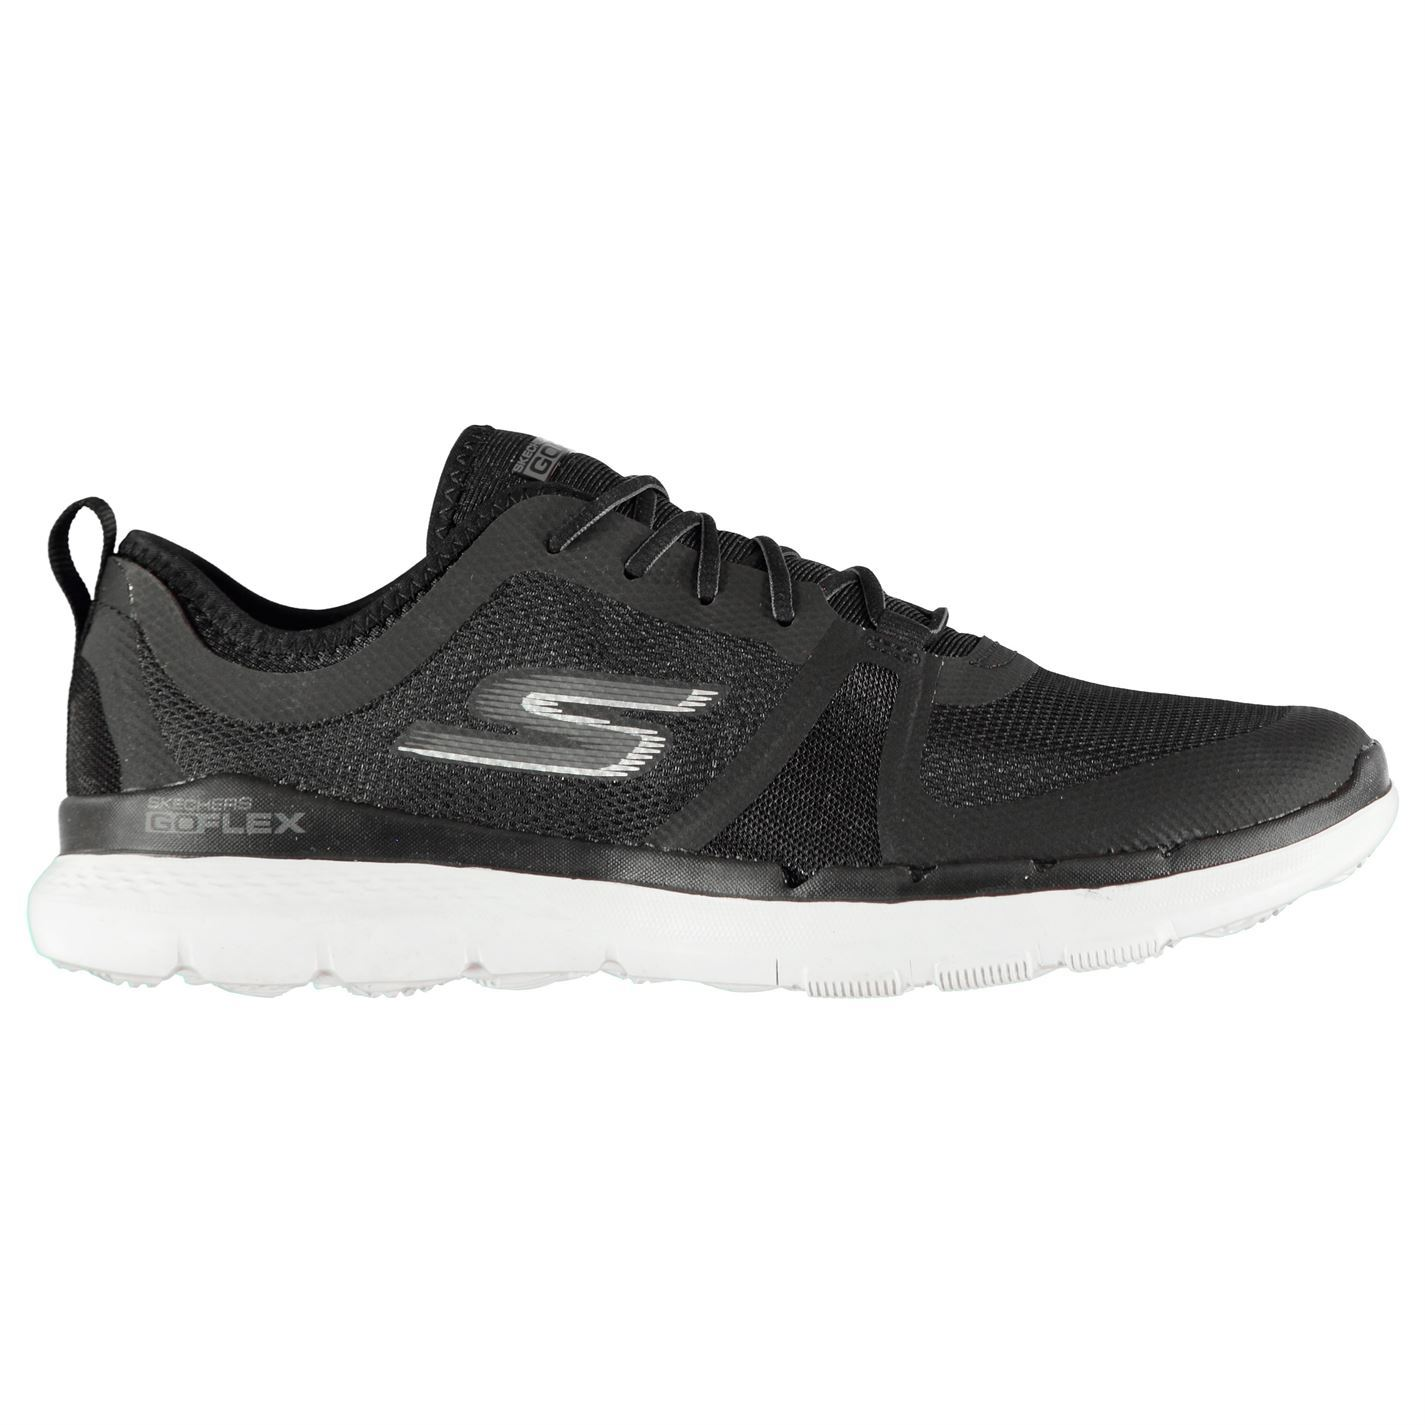 Skechers Lace Womens Go Flex Train Runners Lace Skechers Up Lightweight Shock Absorbing ecaddf